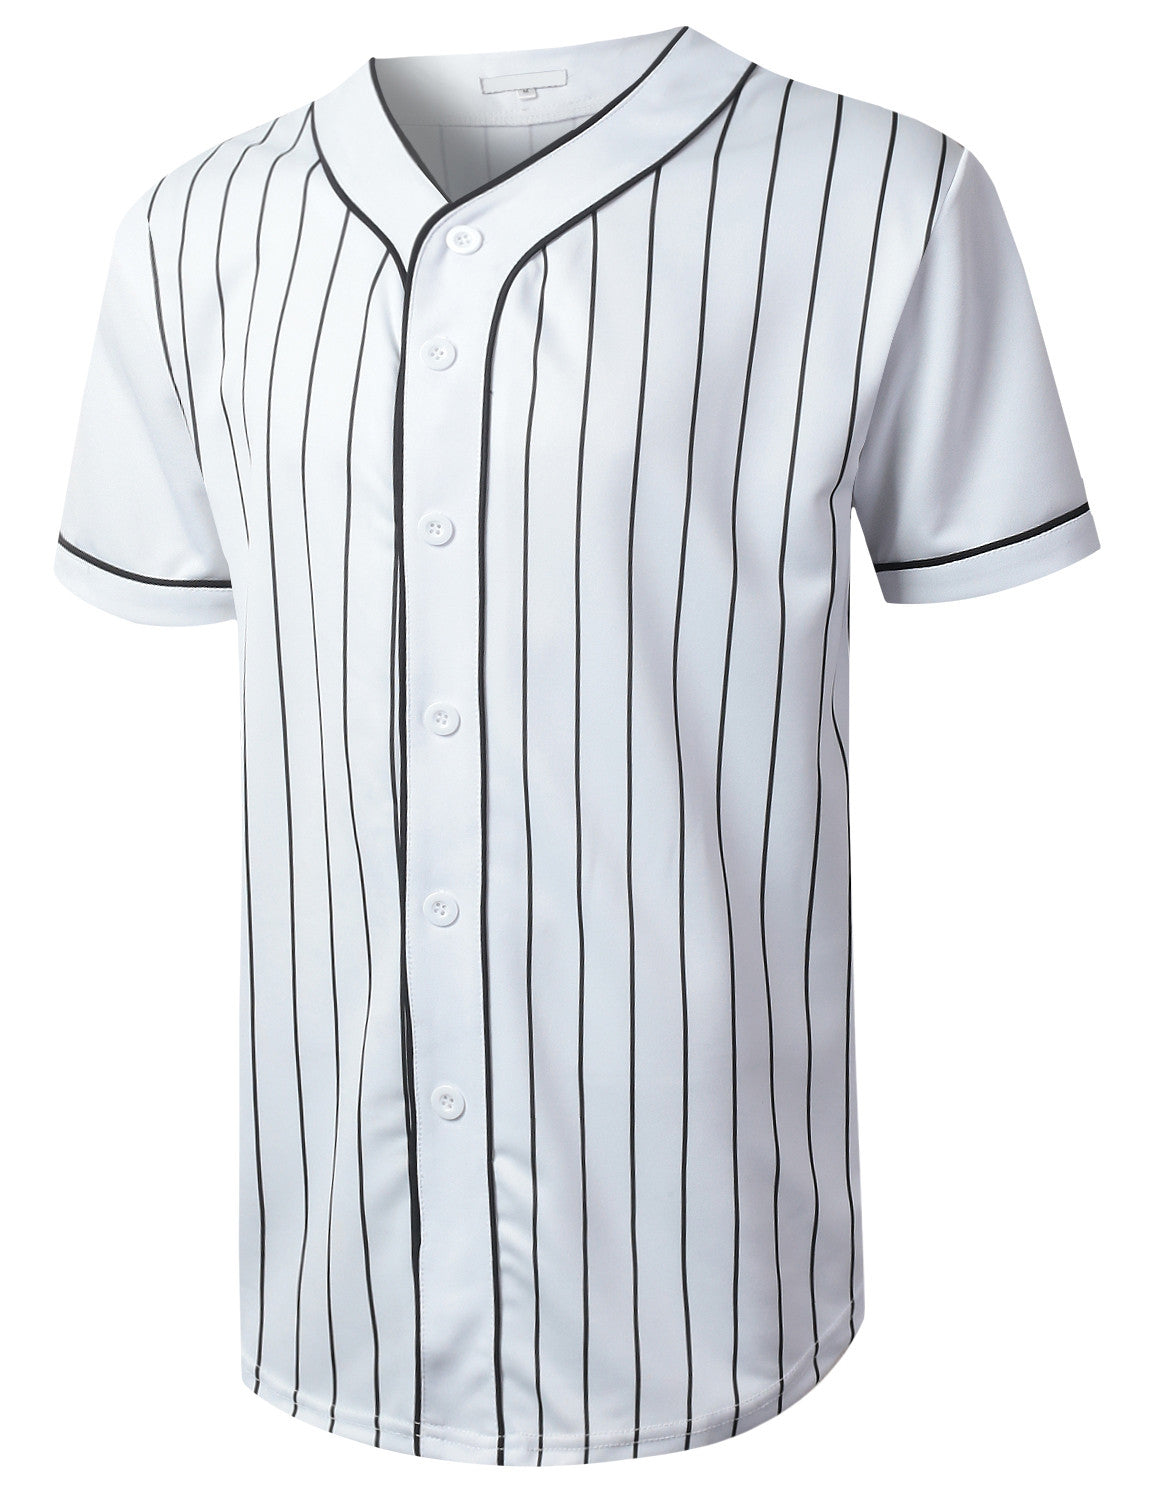 WHITE Striped Baseball Jersey T-shirt - URBANCREWS